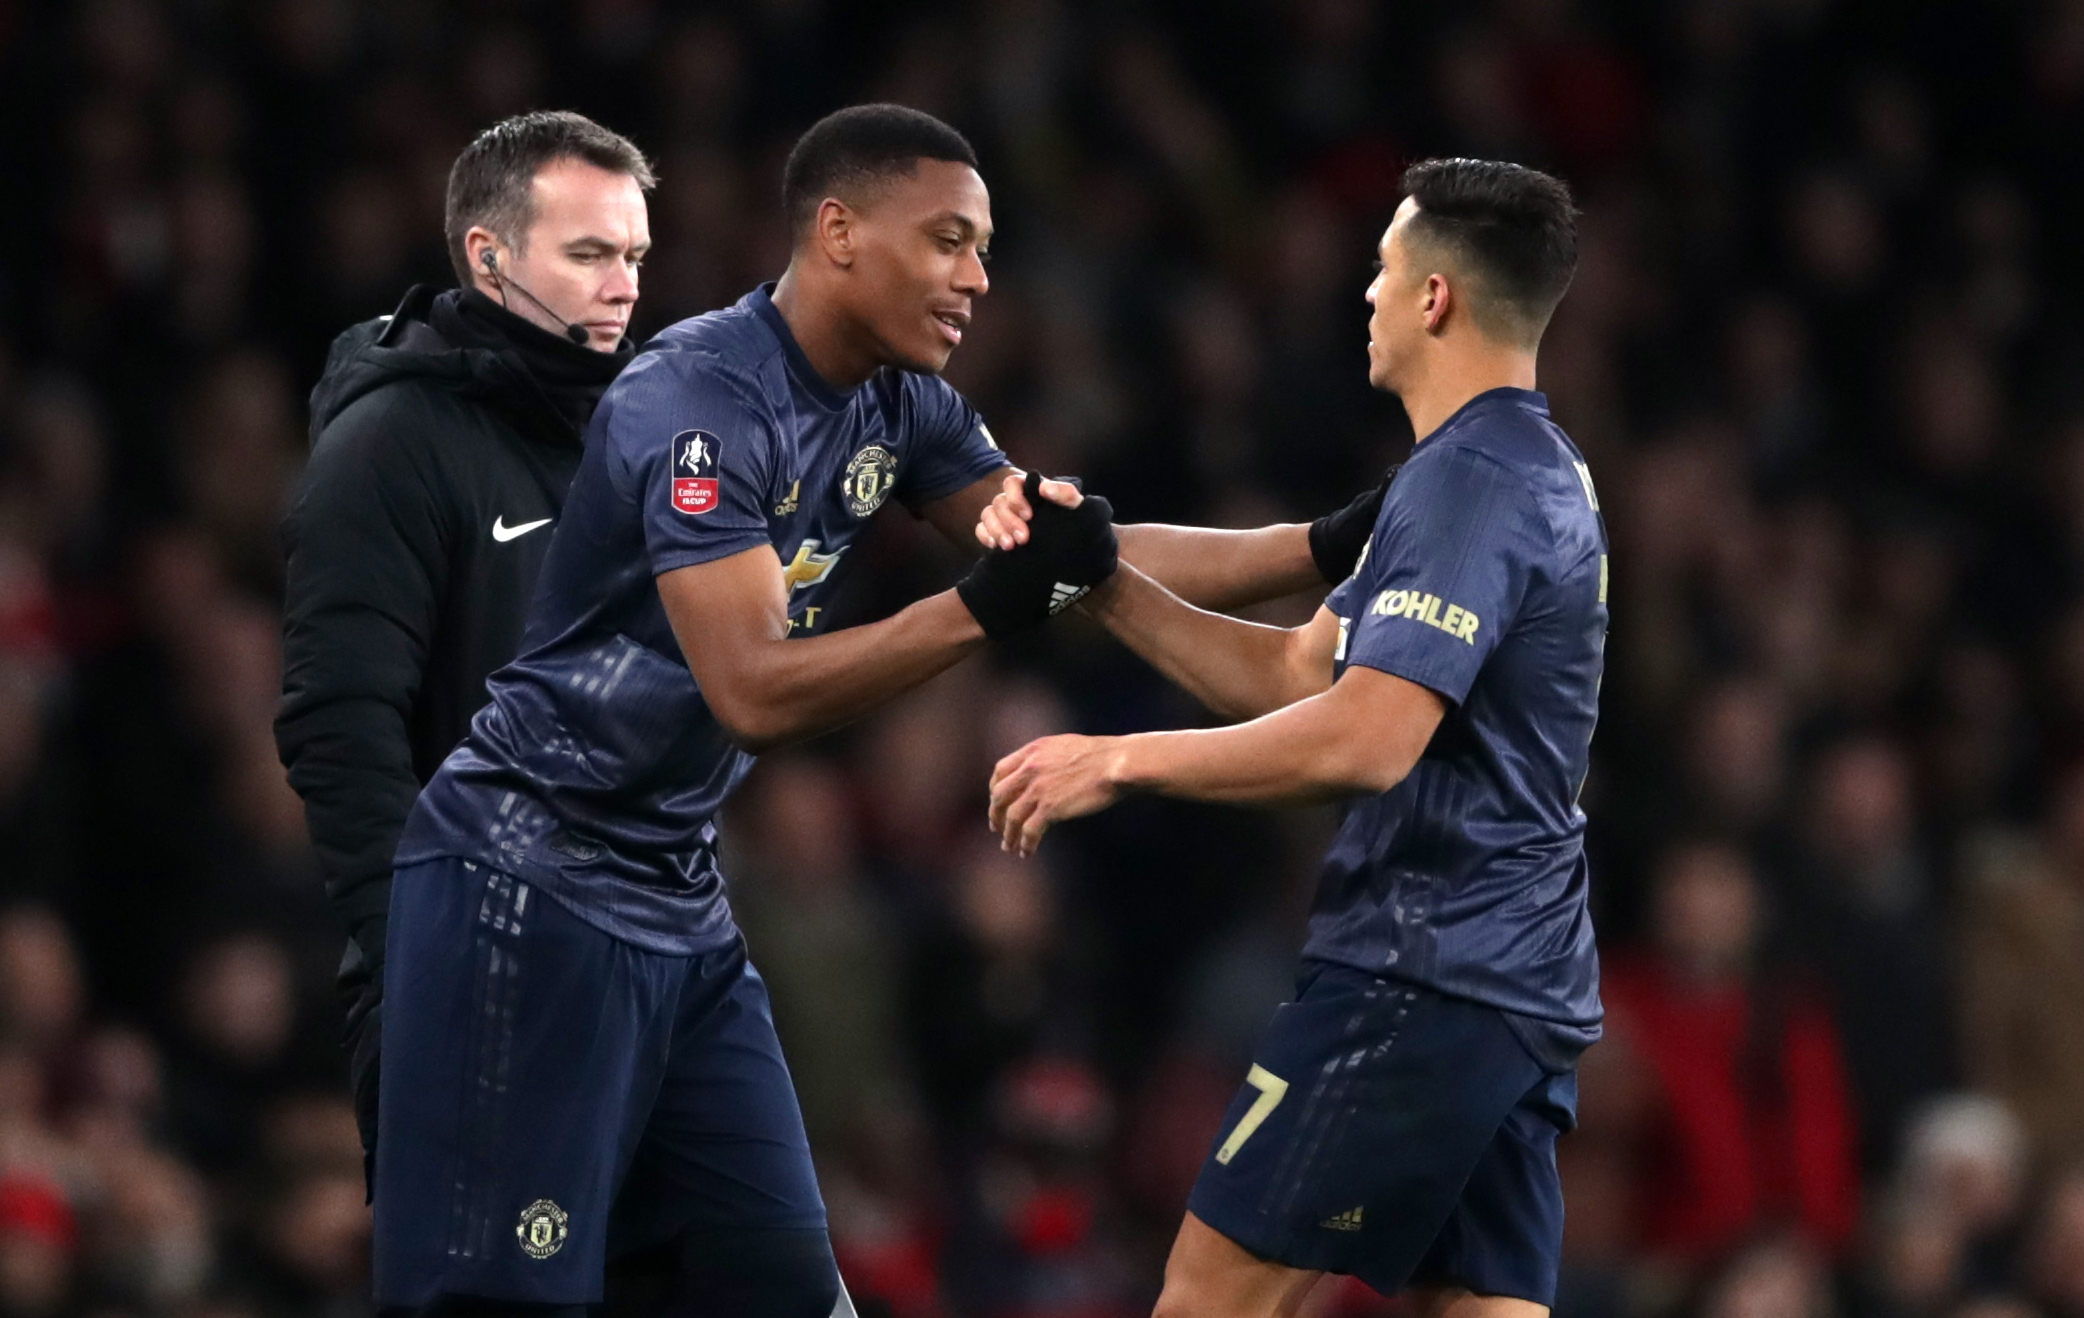 Mourinho's message to Martial after 'disappointing' season